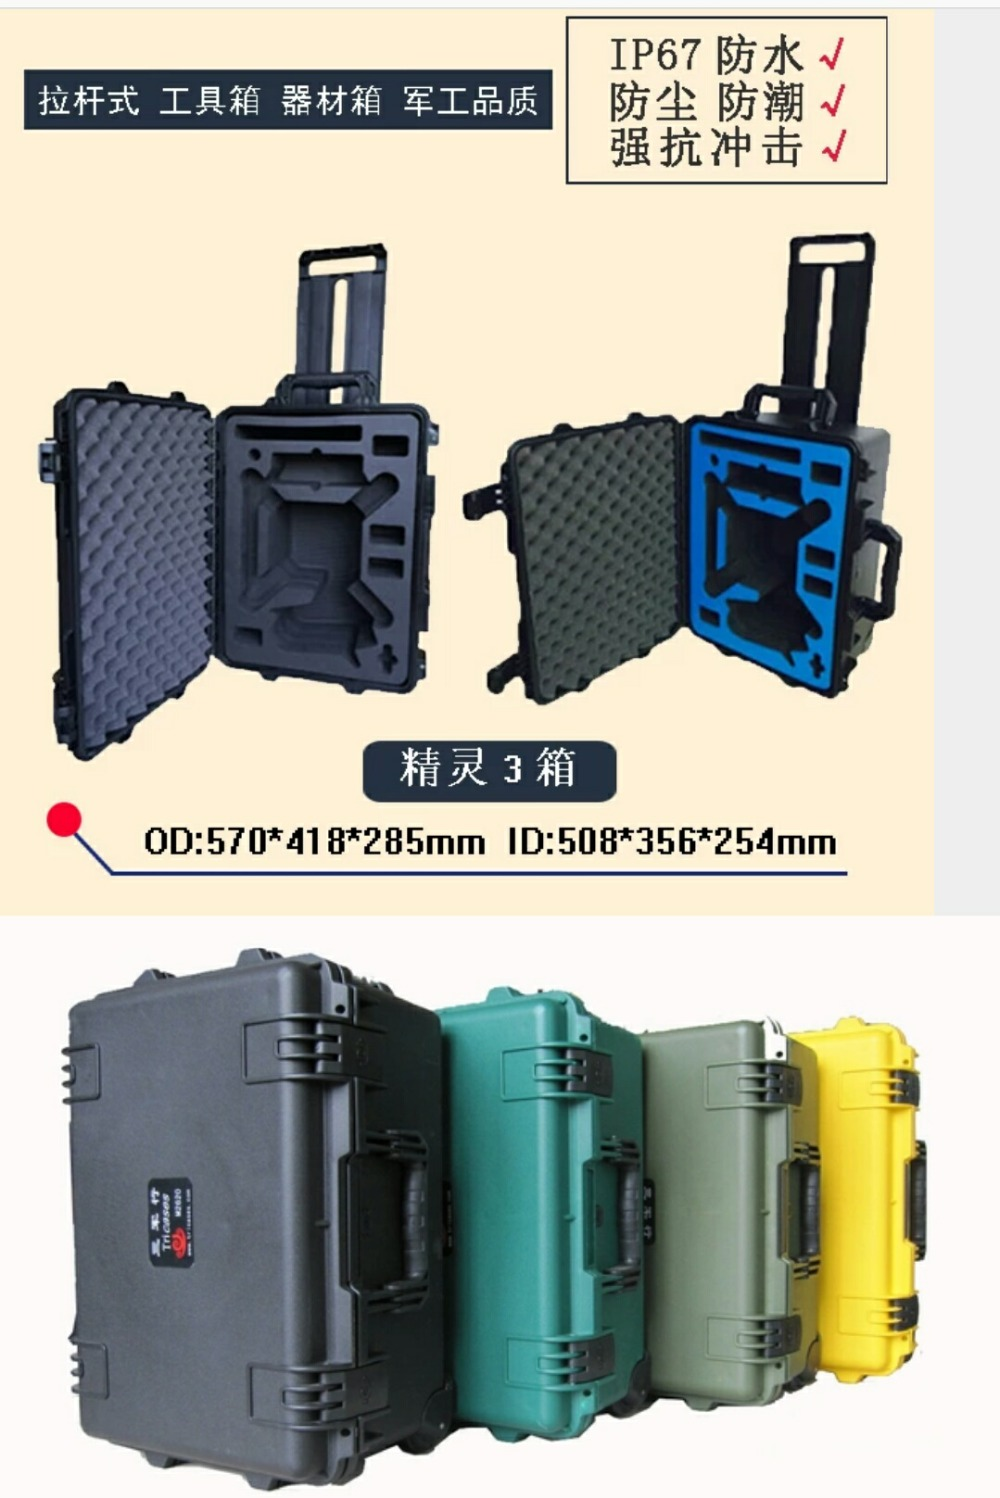 High quality waterproof toolbox tool case trolley case protective box camera case equipment protection box with wheels and foam коробка для мушек snowbee slit foam compartment waterproof fly box x large